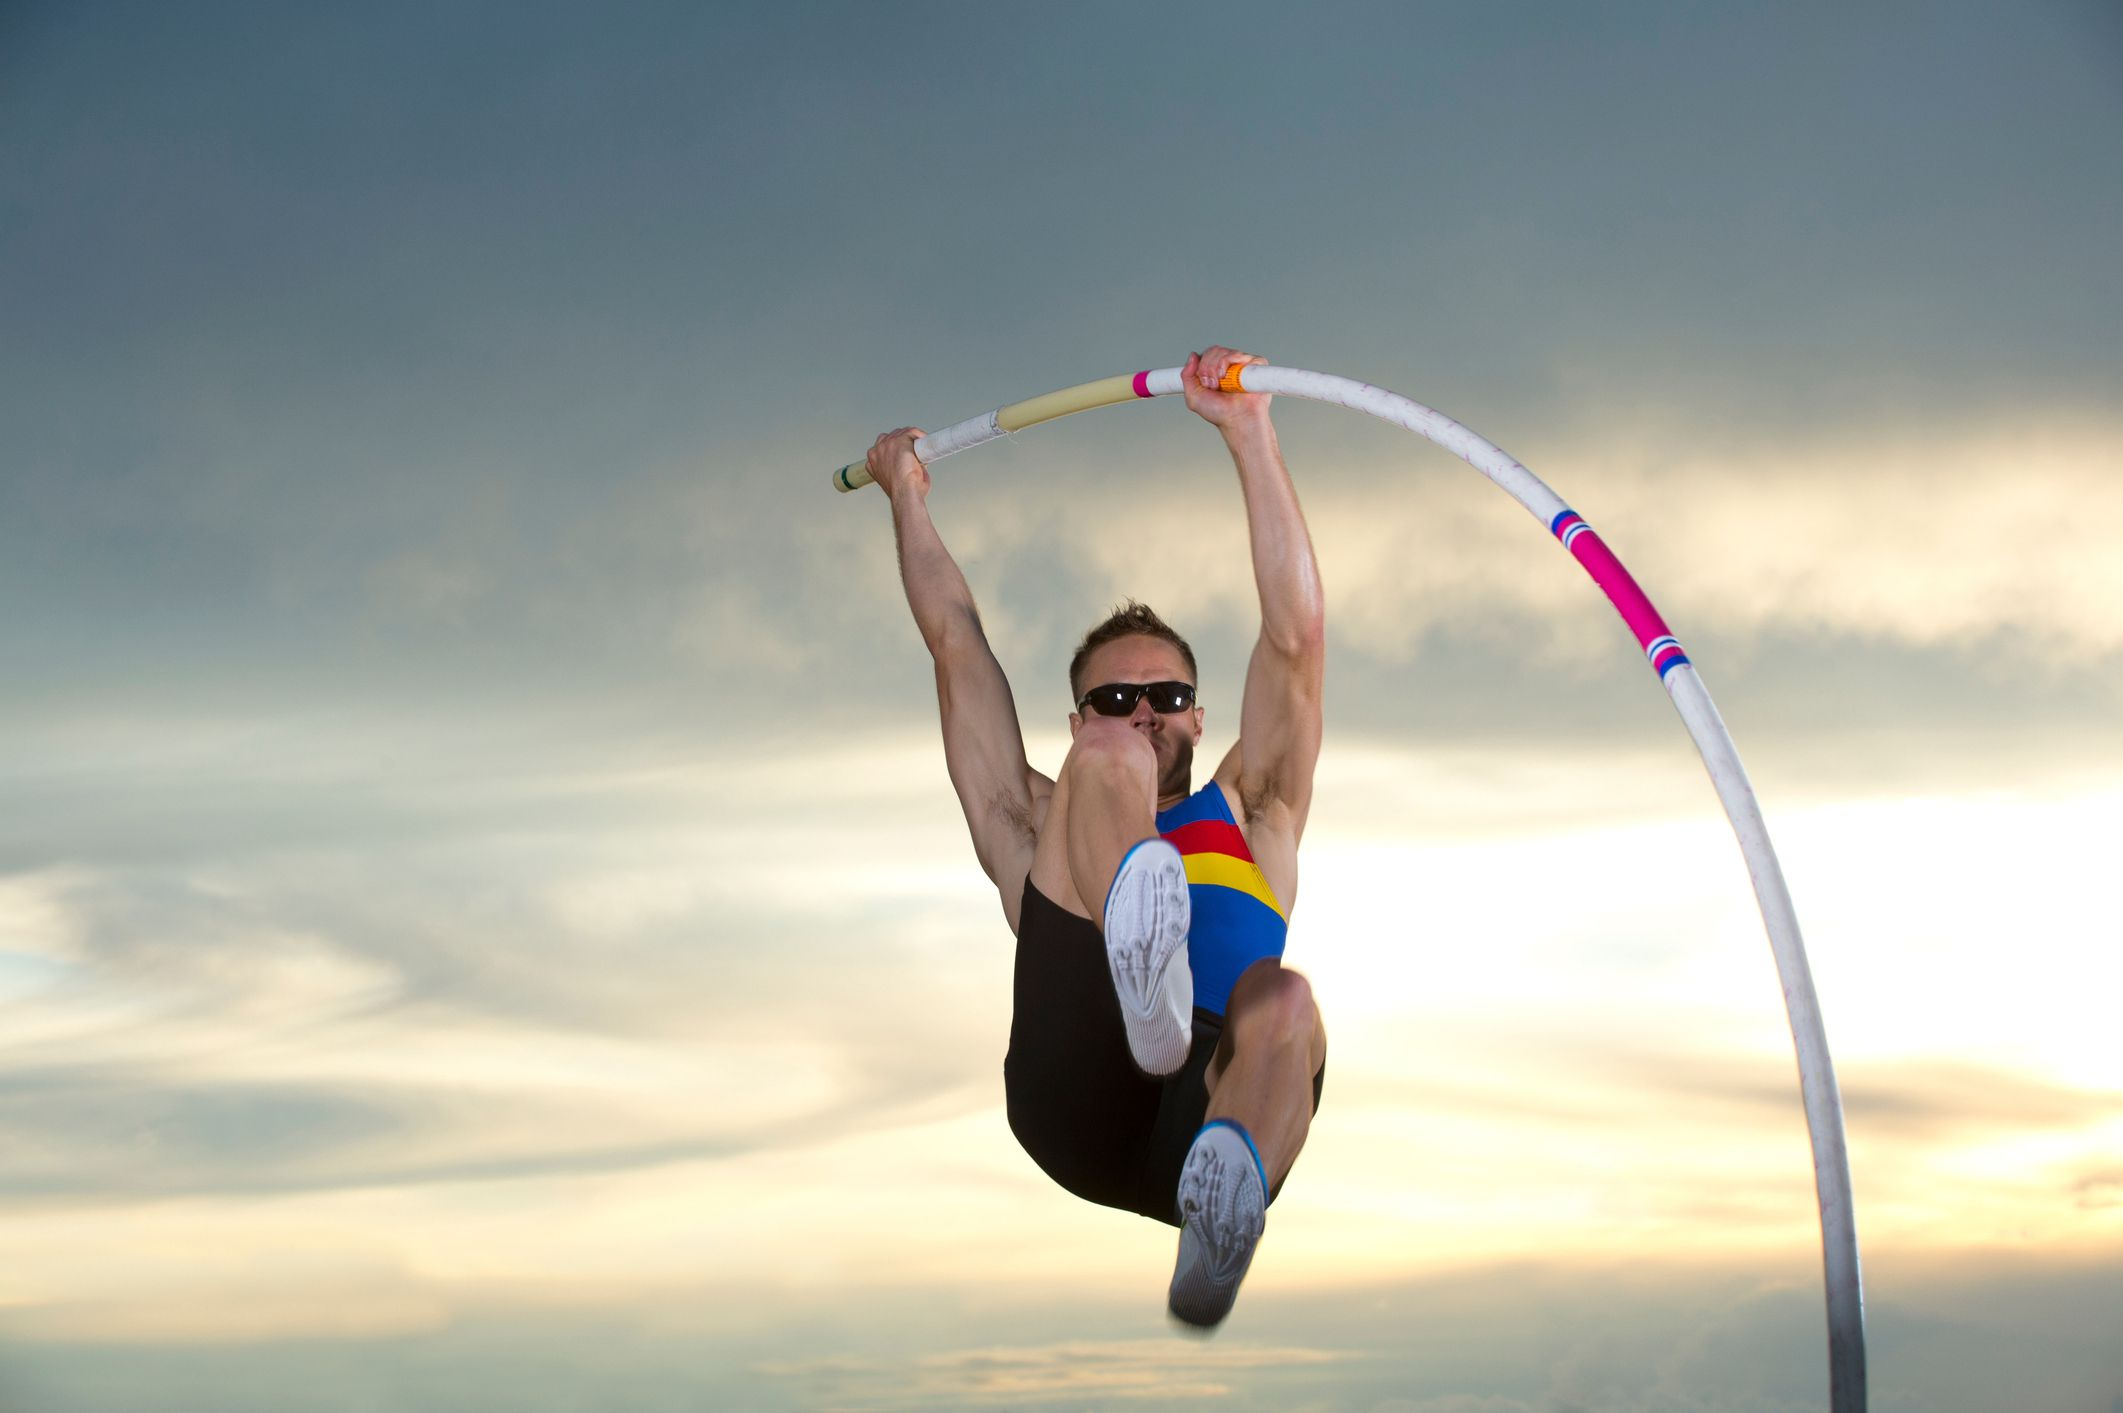 Rules For The Olympic Pole Vault Competition